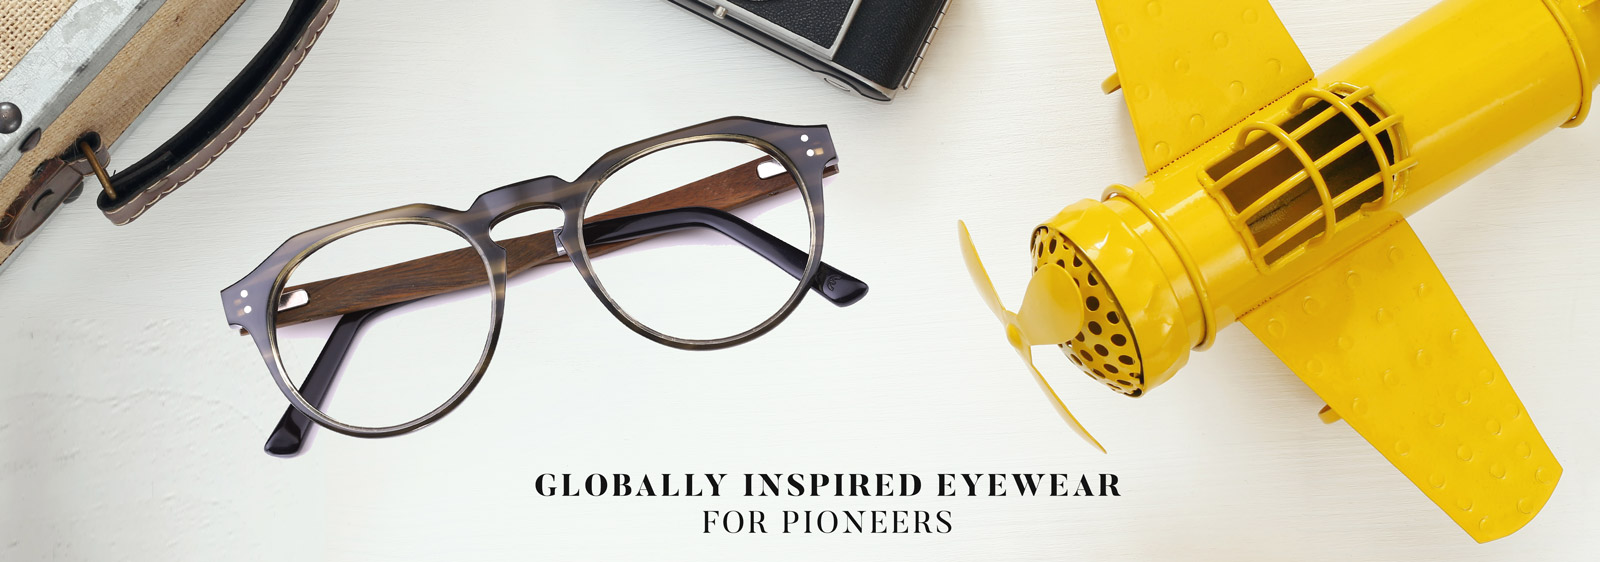 Eyeglasses Online for Pioneers with  Lenses from Essilor